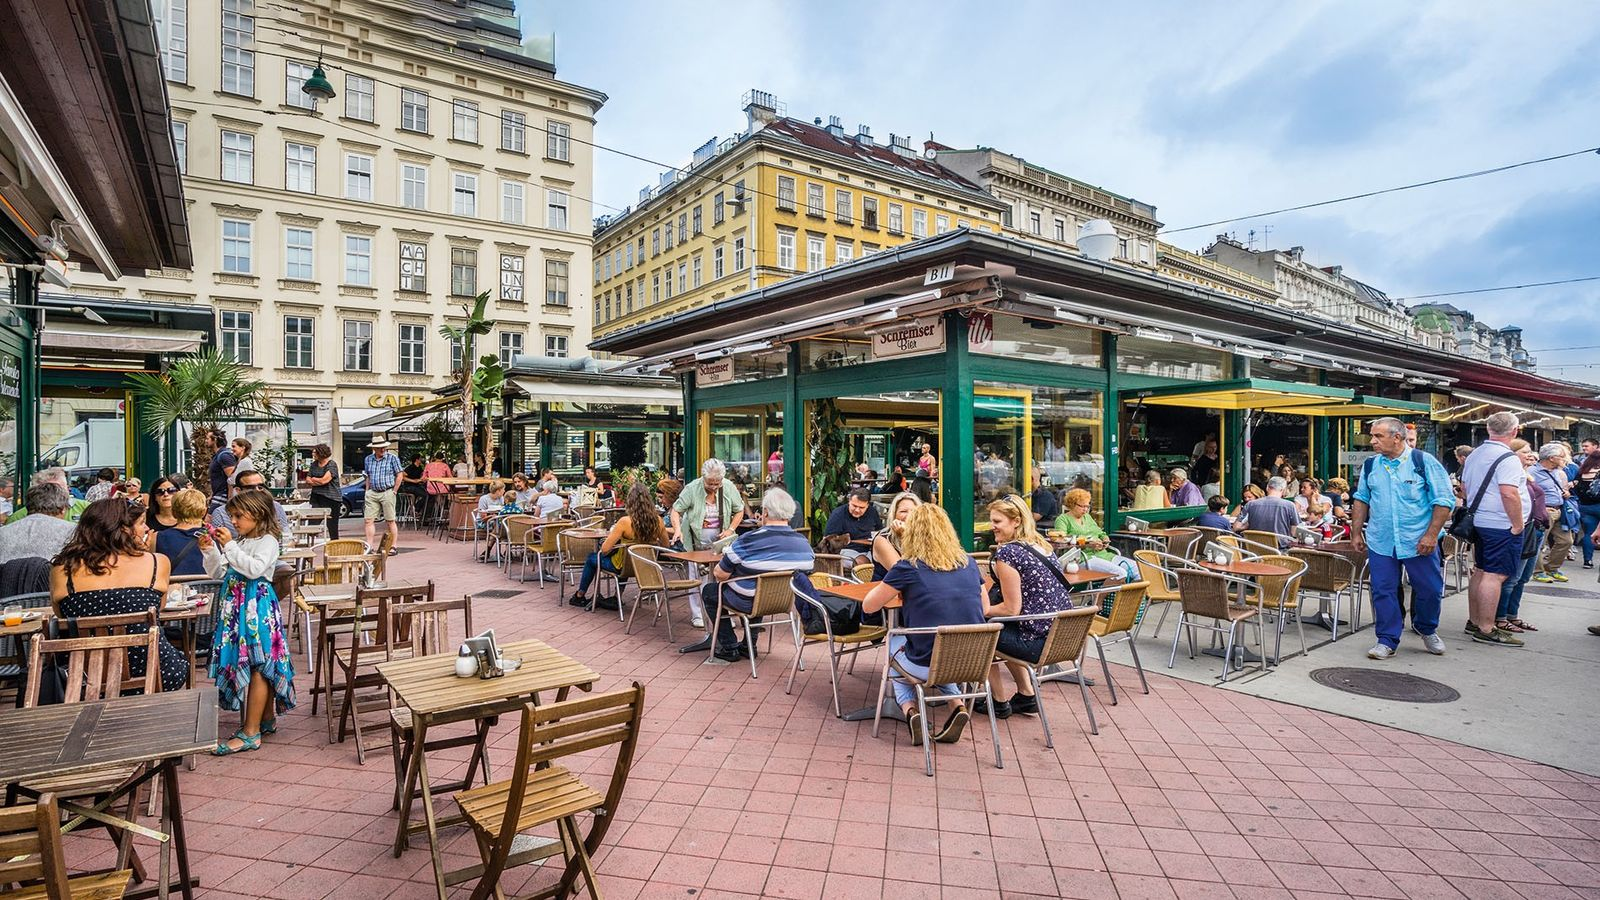 Diners and drinkers at Vienna's Naschmarkt.